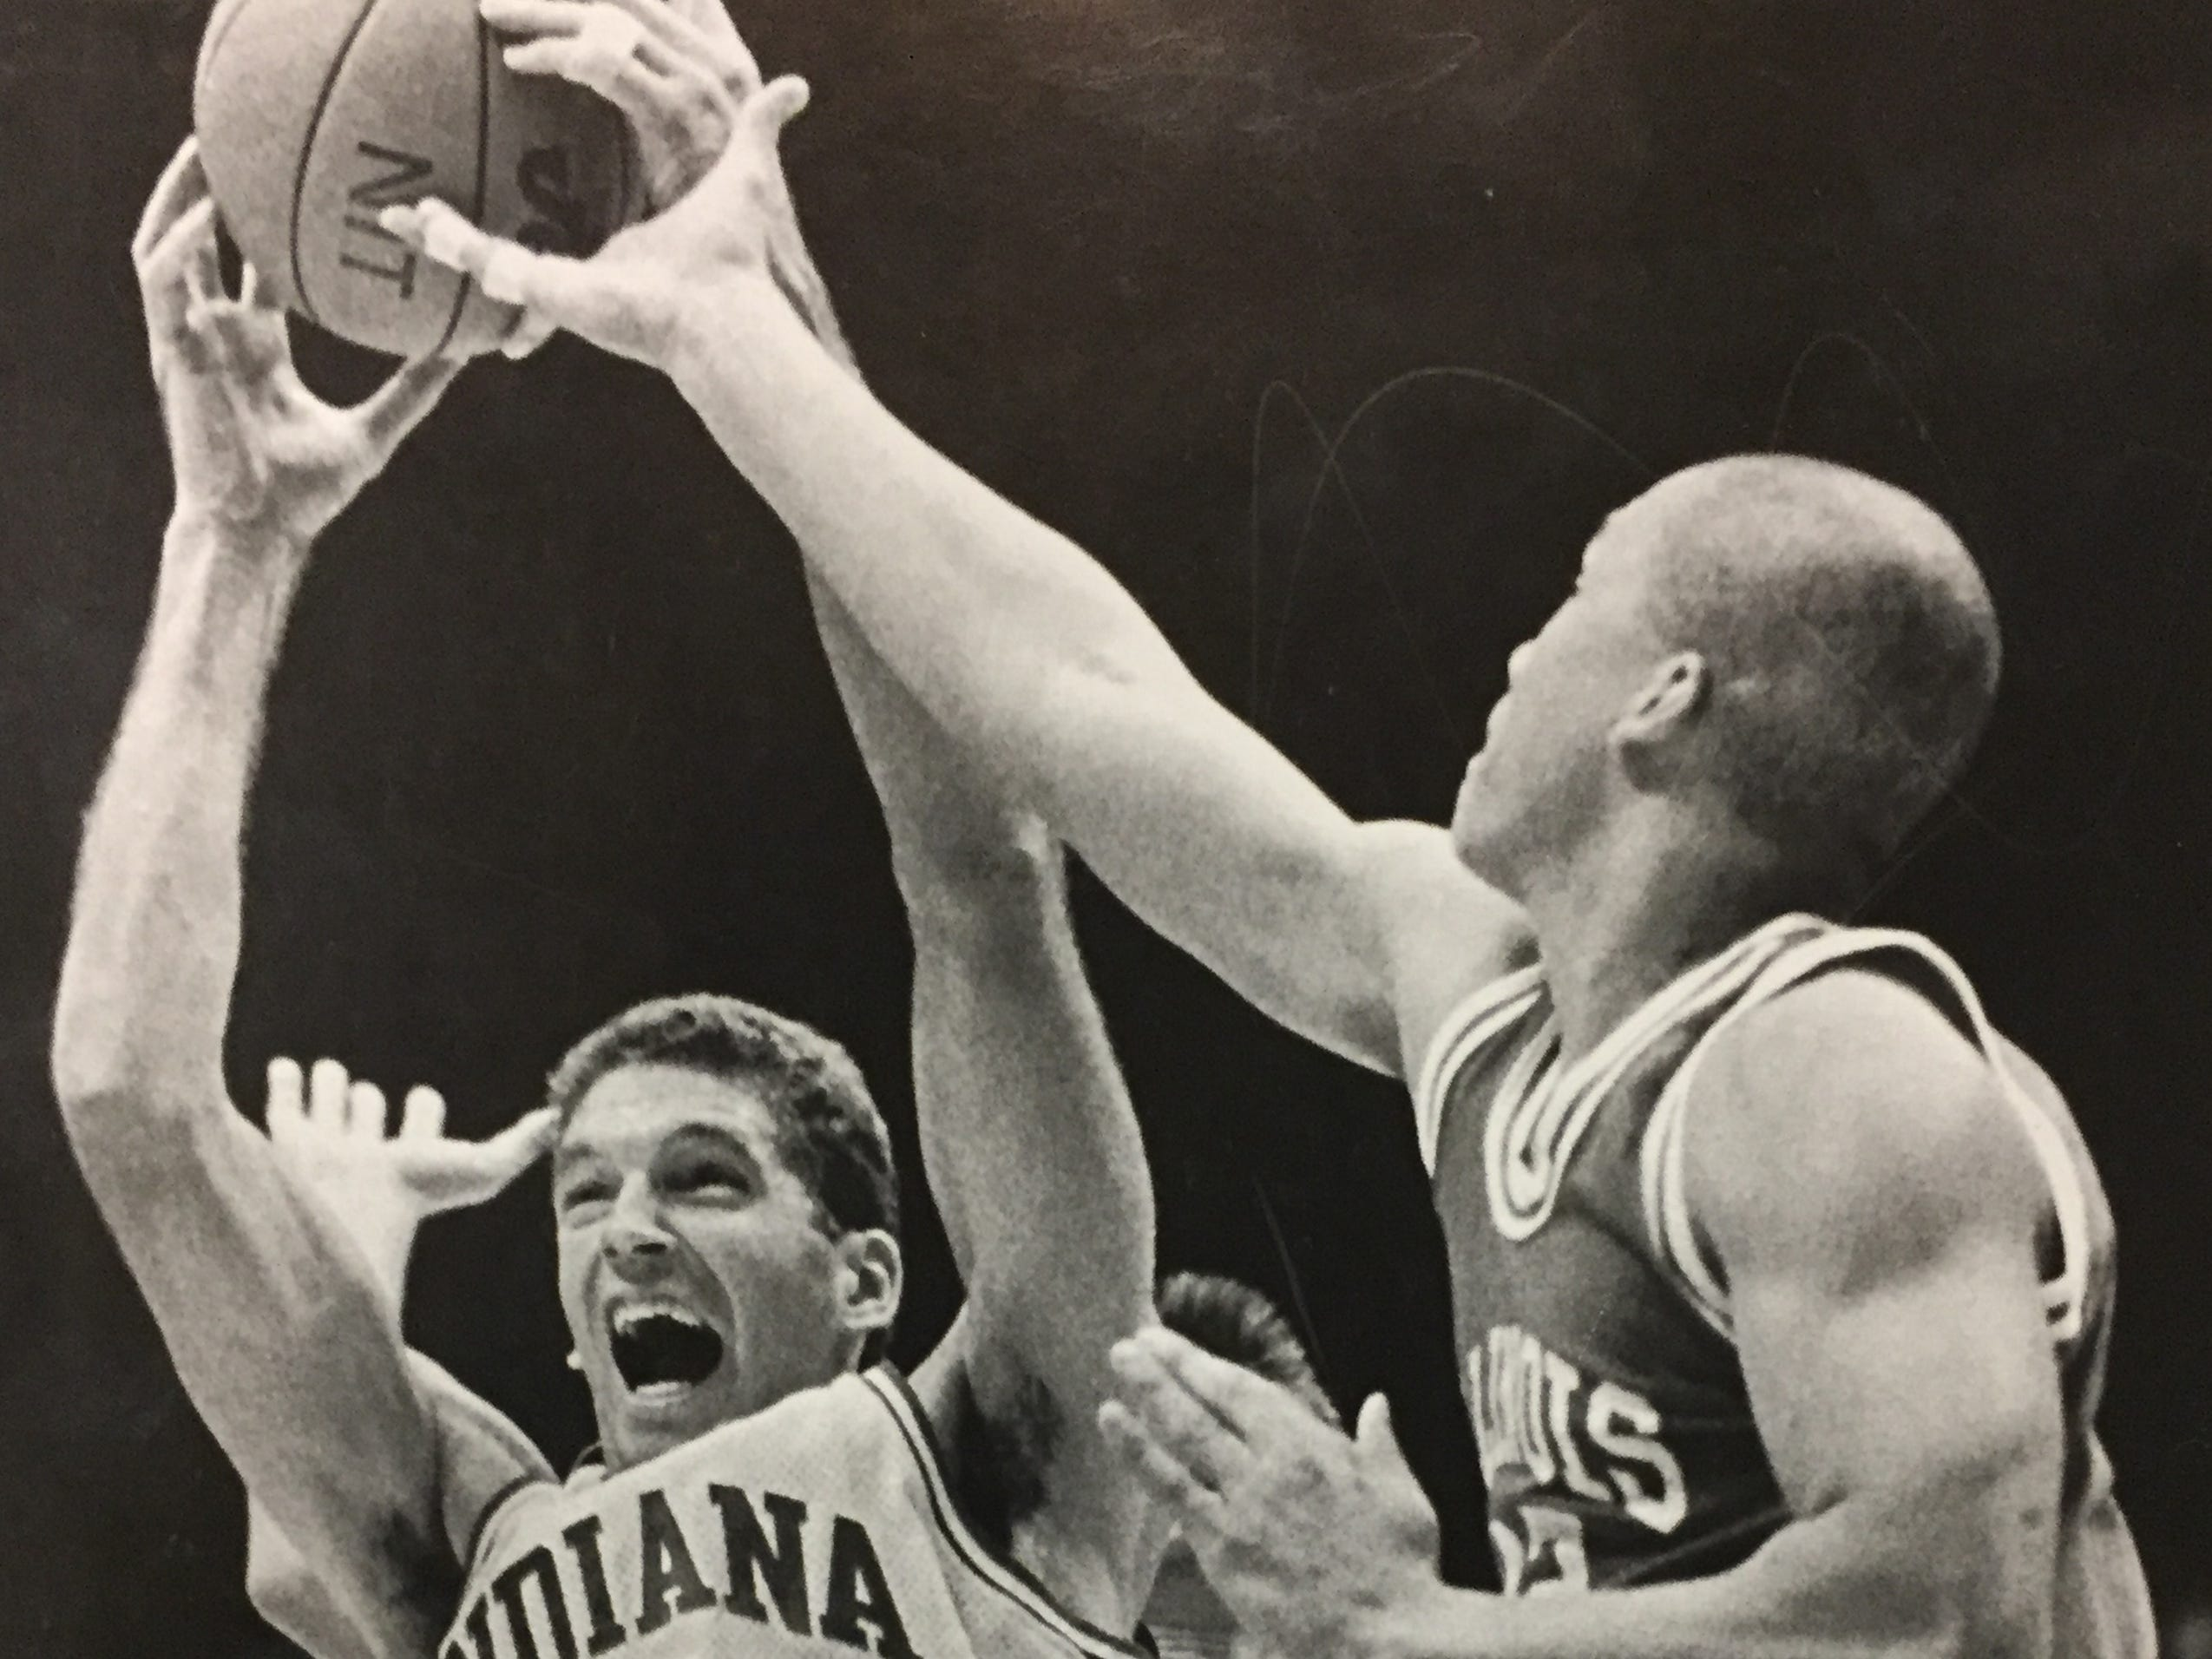 Indiana's Magnus Pelkowski (14) grimaces as he battles for a rebound with Illinois State's Scott Fowler and Sonny Roberts on Nov. 18, 1988.